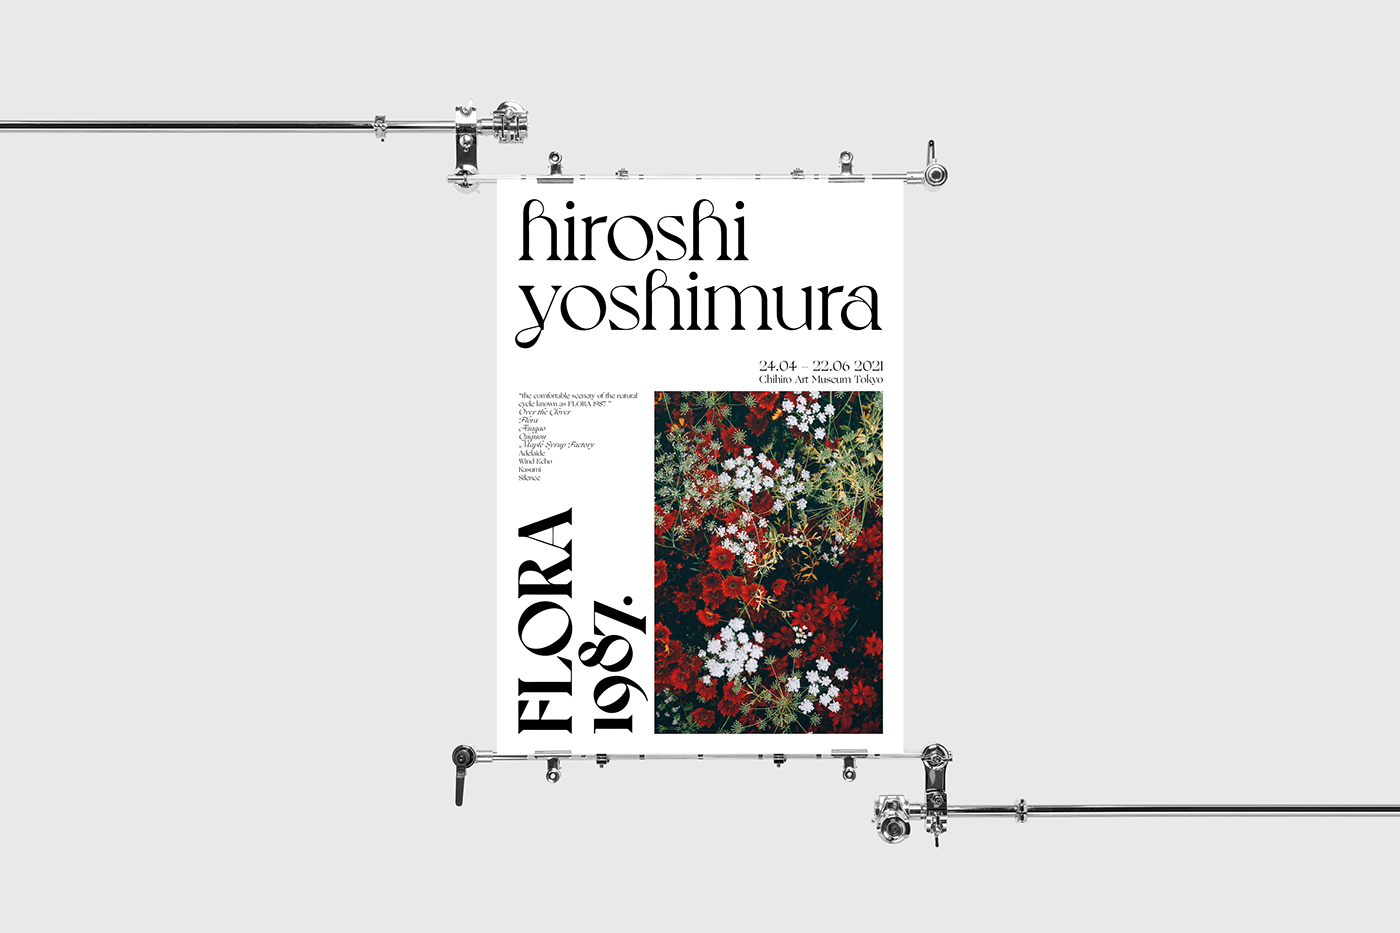 art brand and identity branding  editorial design  Event graphic design  graphic layout moodboard museum poster